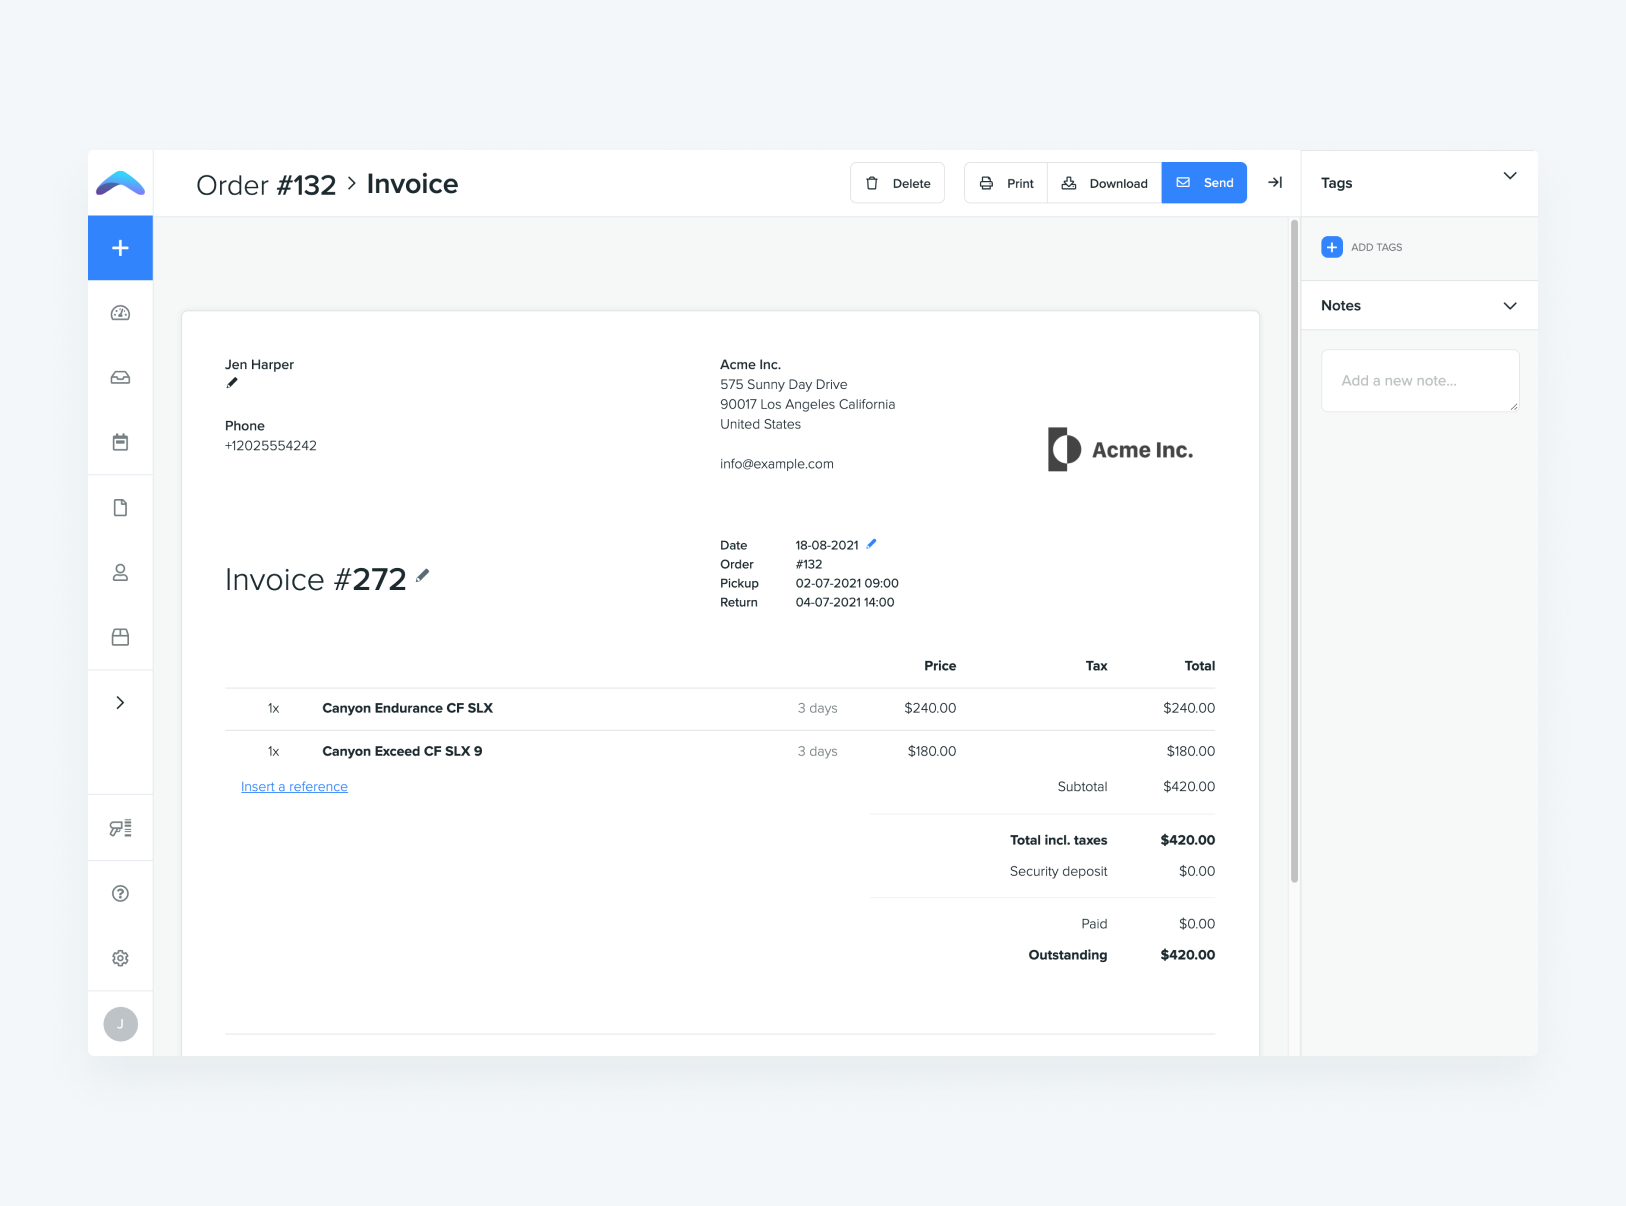 Booqable Software - Turn orders into quotes, contracts, and invoices, and send them to your customers directly from Booqable.